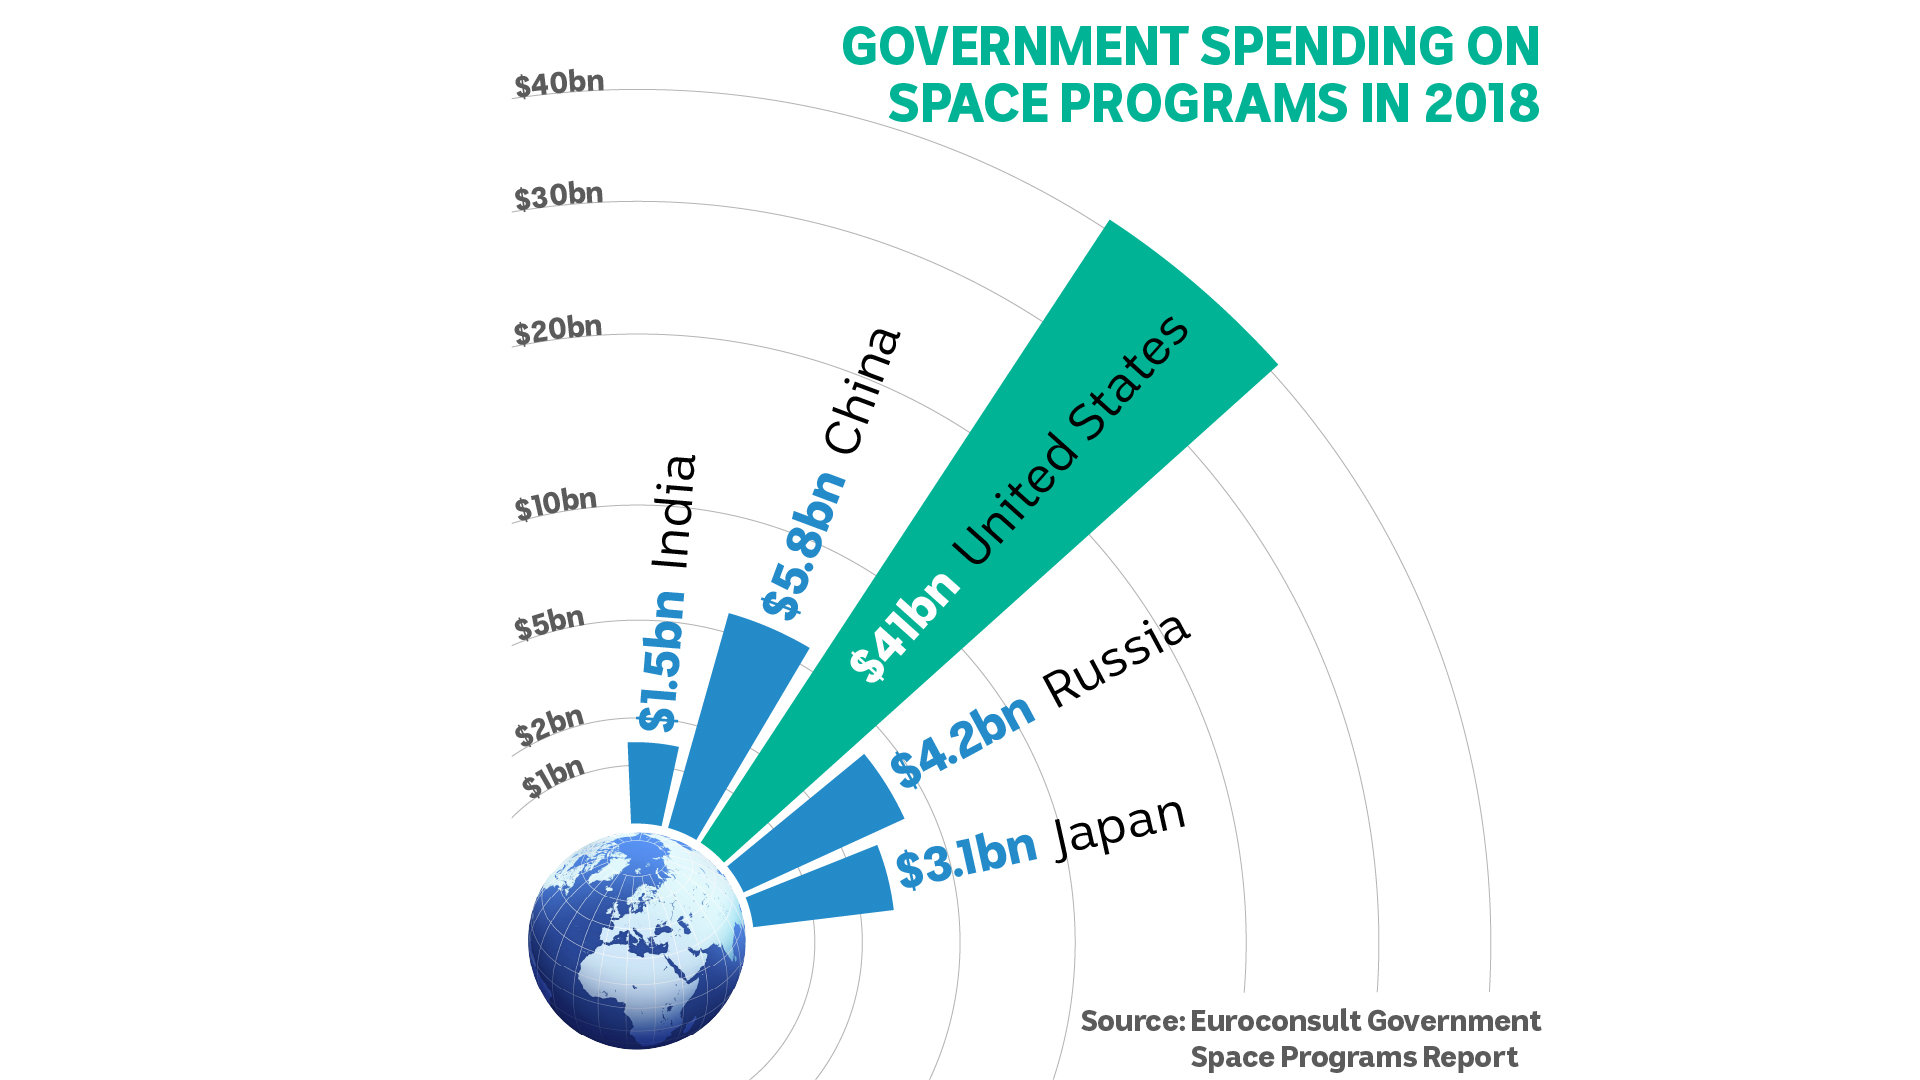 An illustration showing government spending on space programs in 2018.